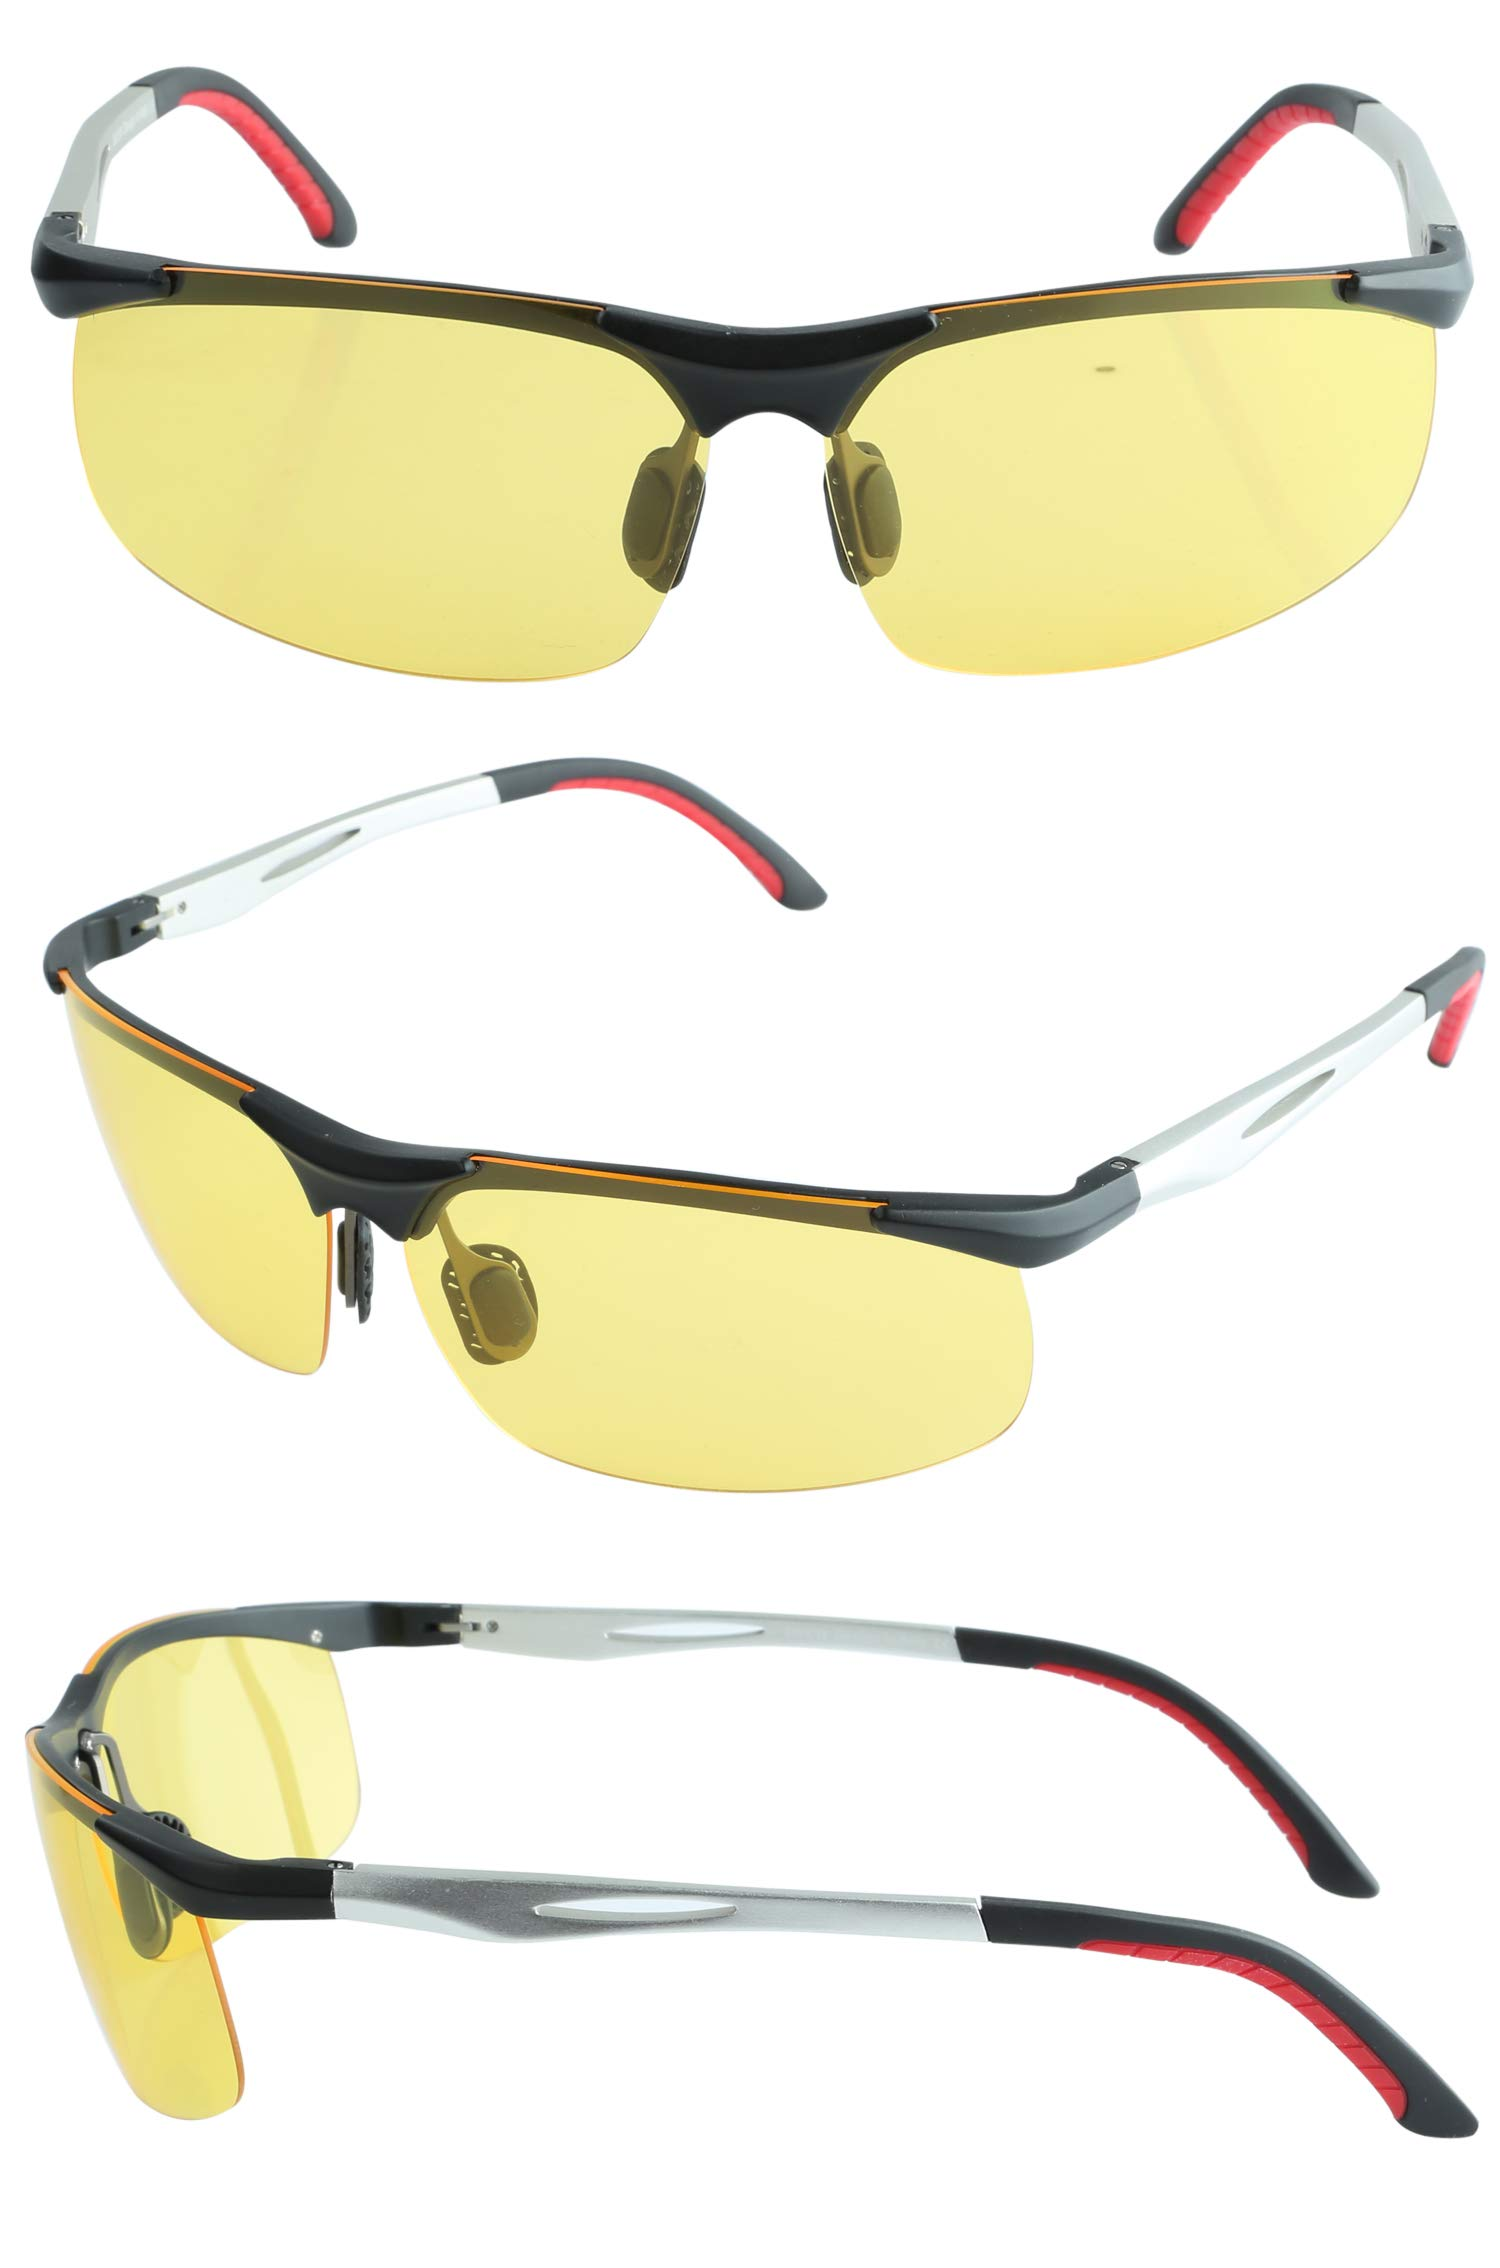 6f4bd54786b5 DUCO Night Driving Glasses with Polarized Yellow Lens for Cutting Headlight Glare  2181